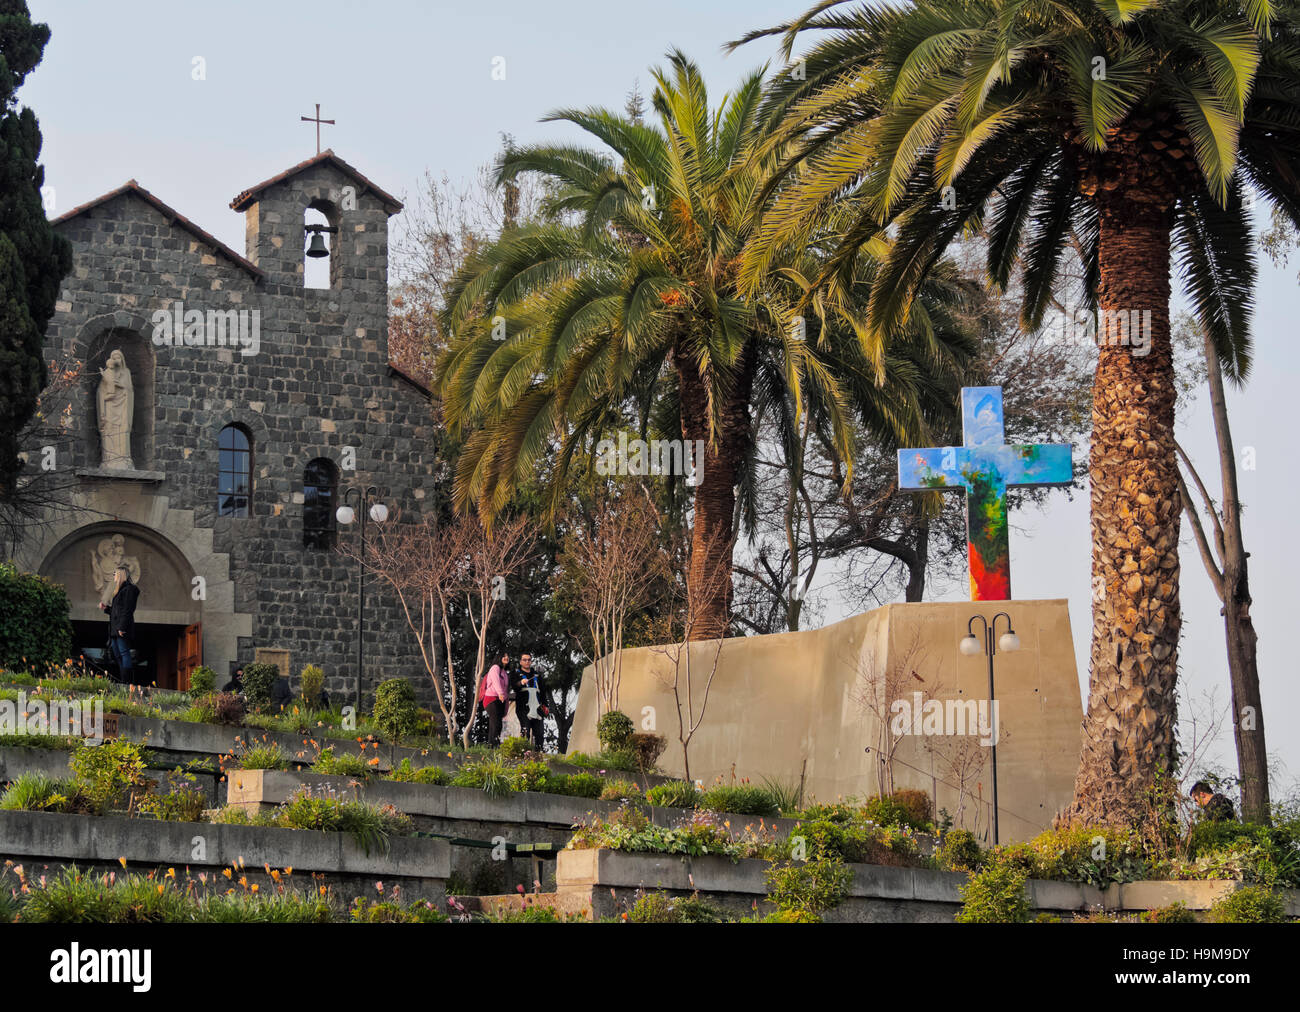 Chile, Santiago, San Cristobal Hill, View of the  Sanctuary of the Immaculate Conception. - Stock Image